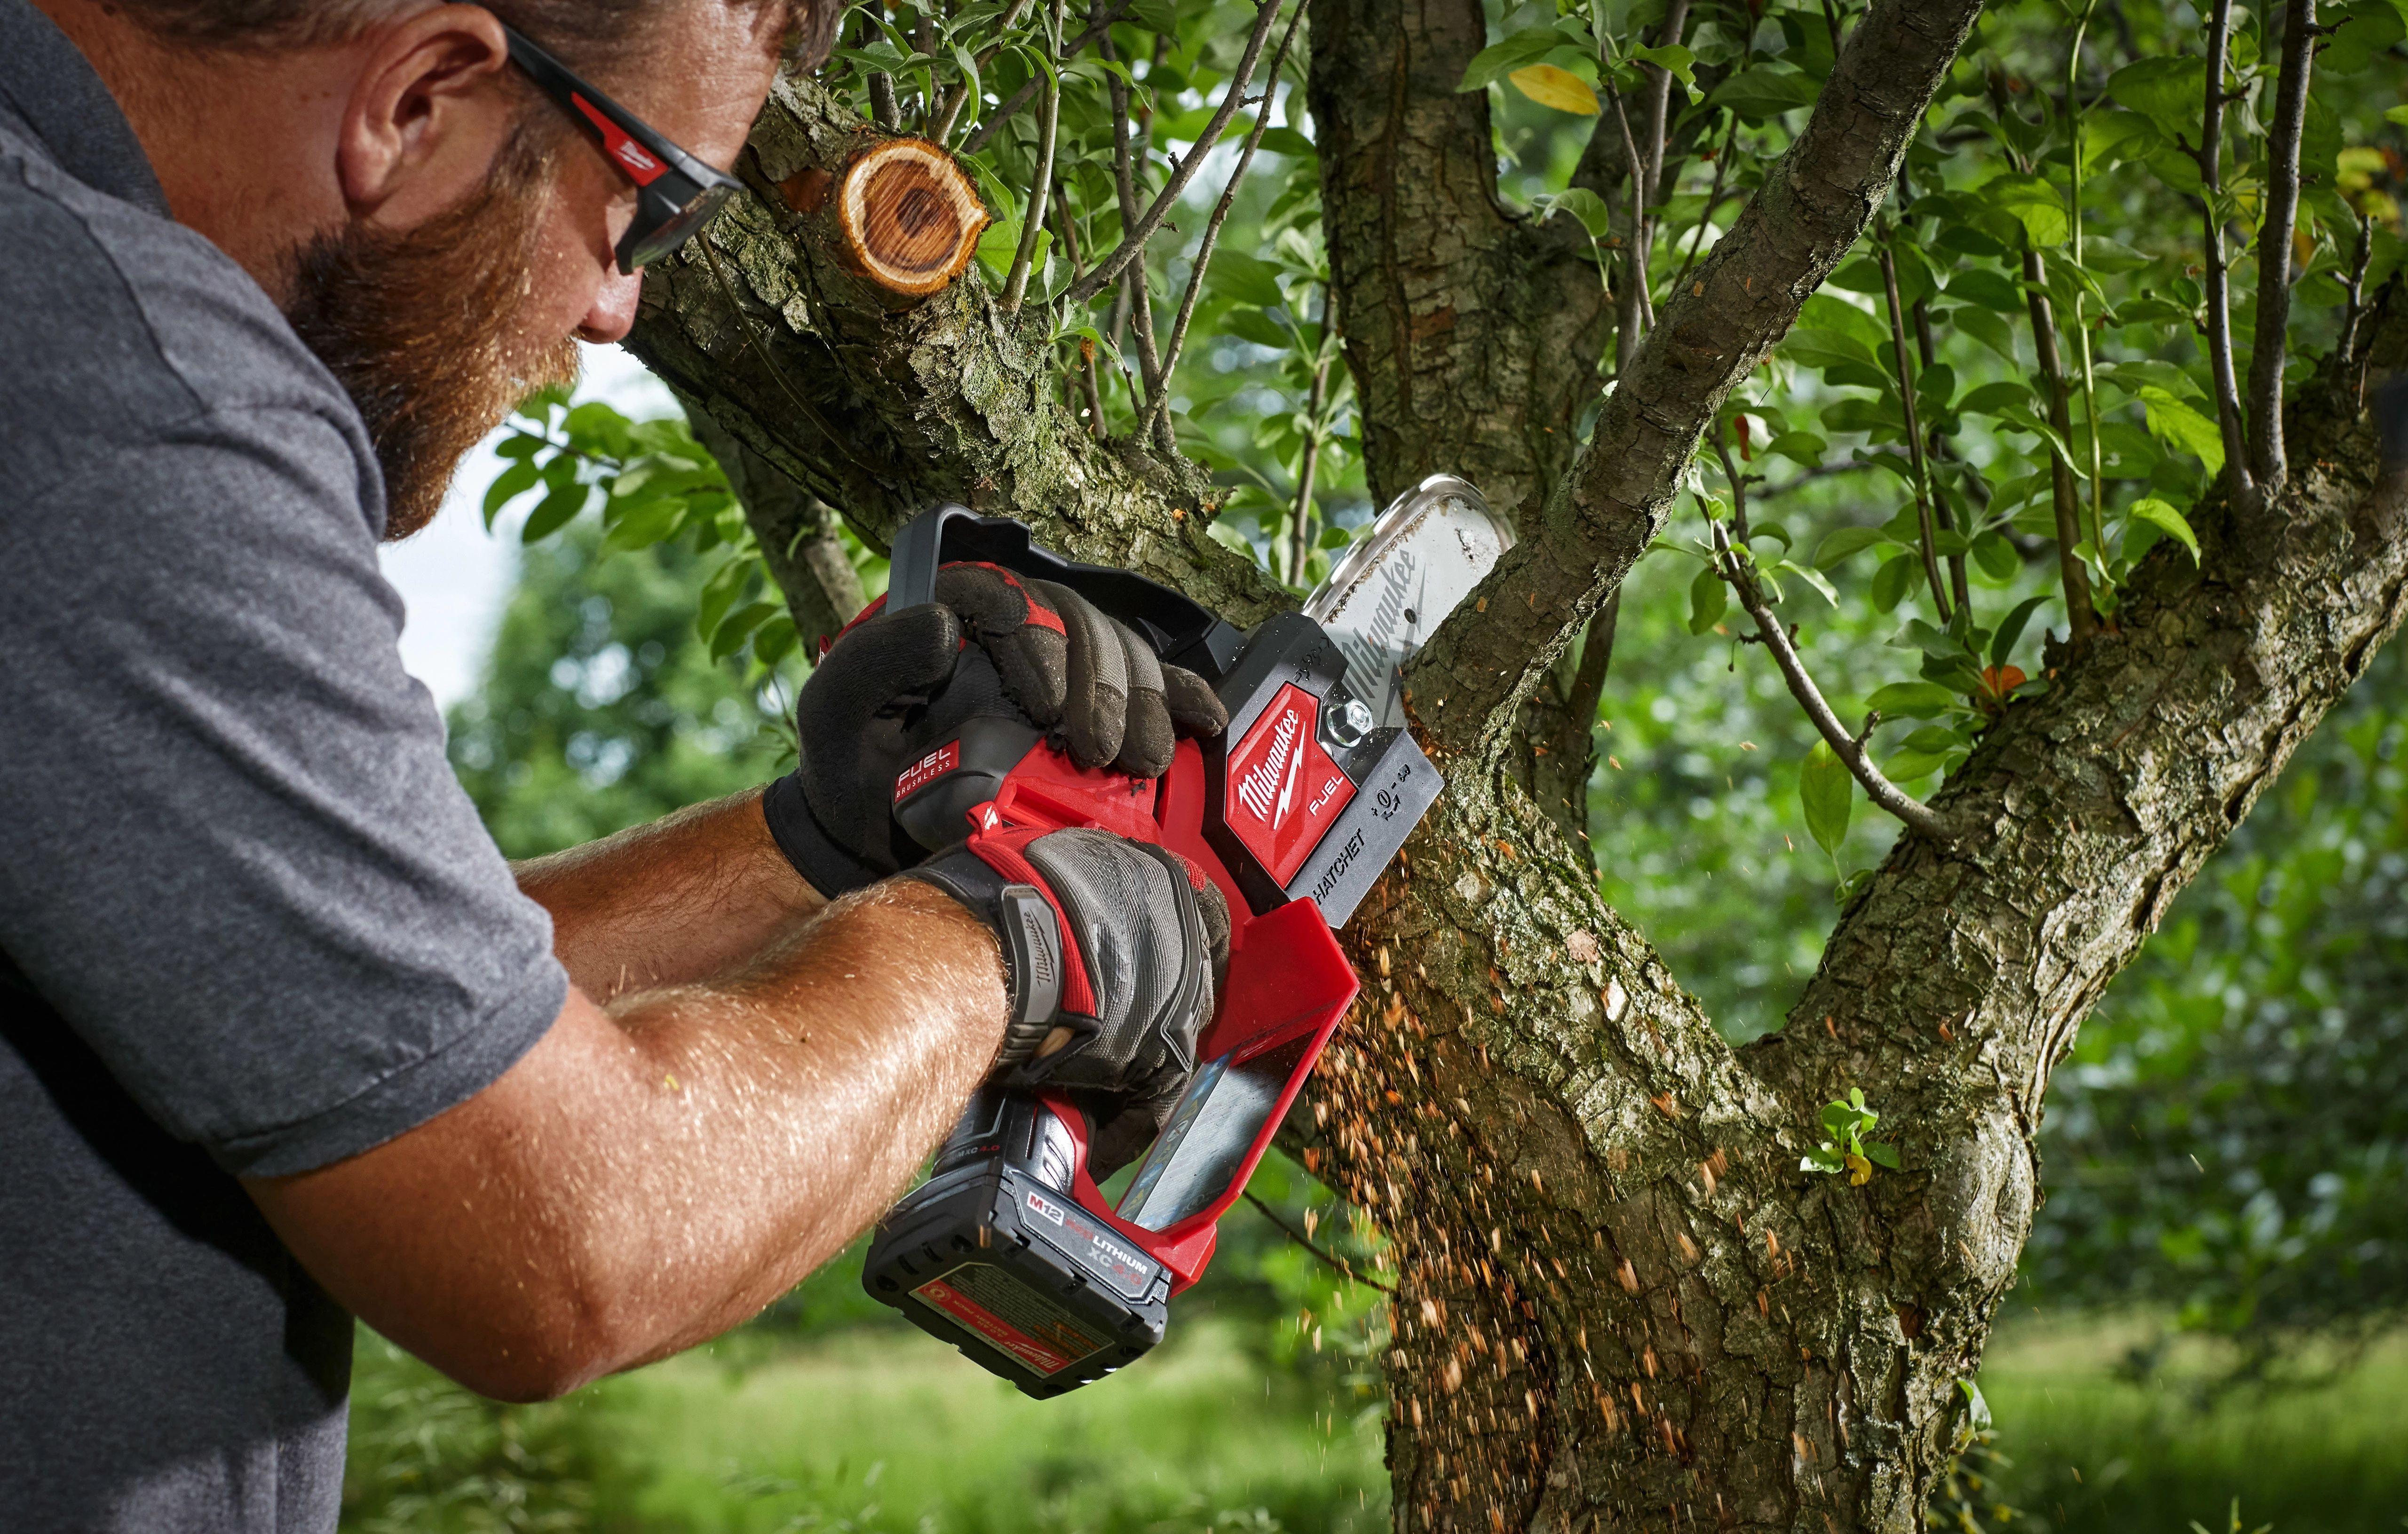 A landscape tree specialist utilizes a Milwaukee hatchet pruning saw to remove small branches in tight space